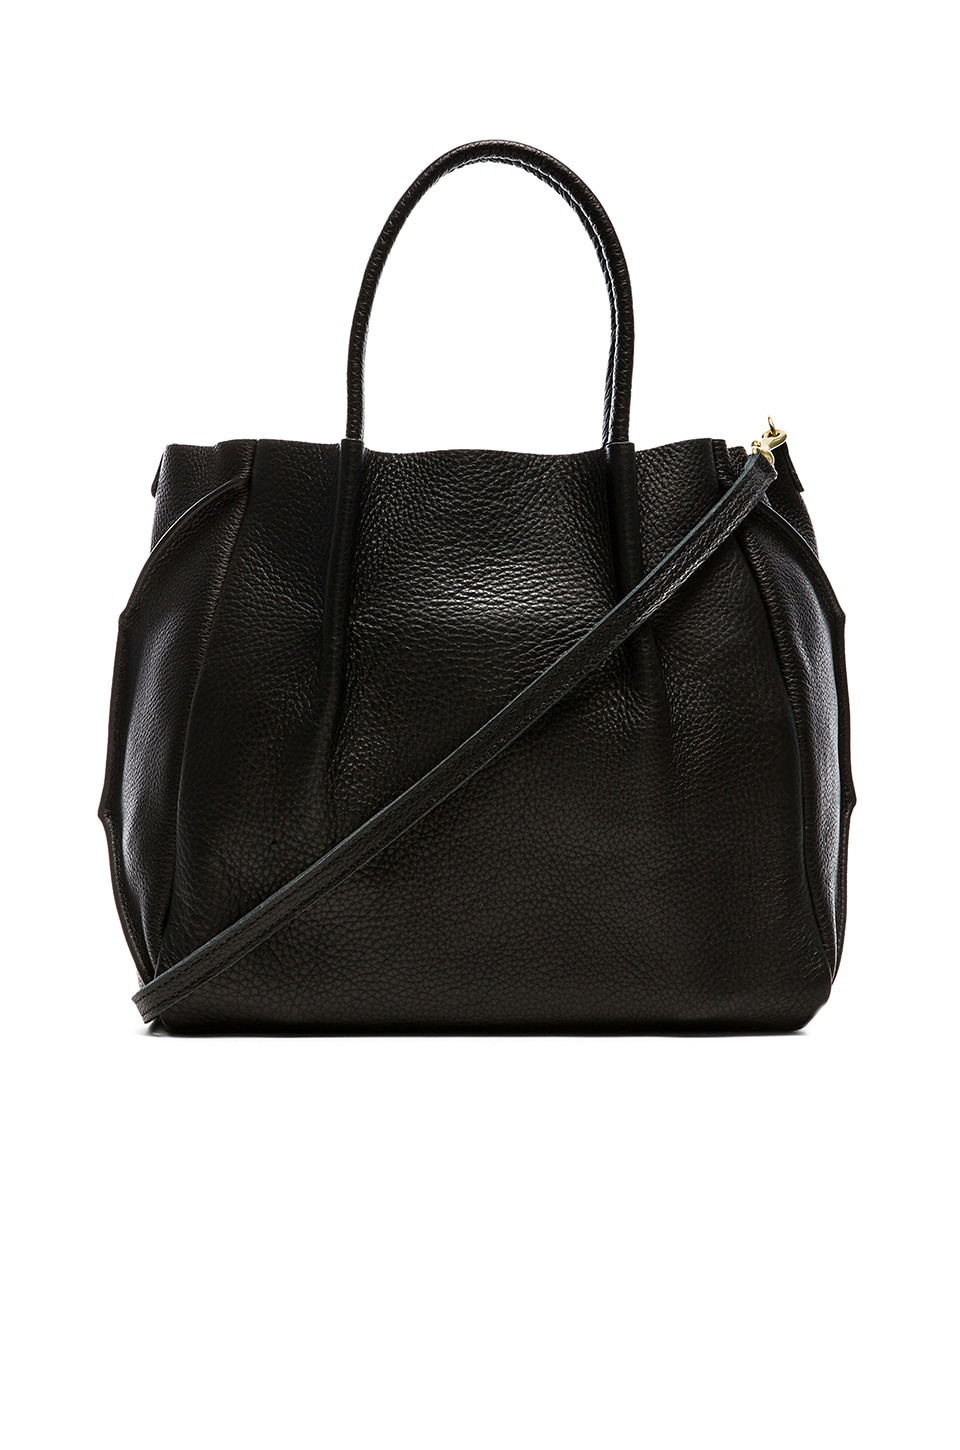 Oliveve Zoe Tote in Black